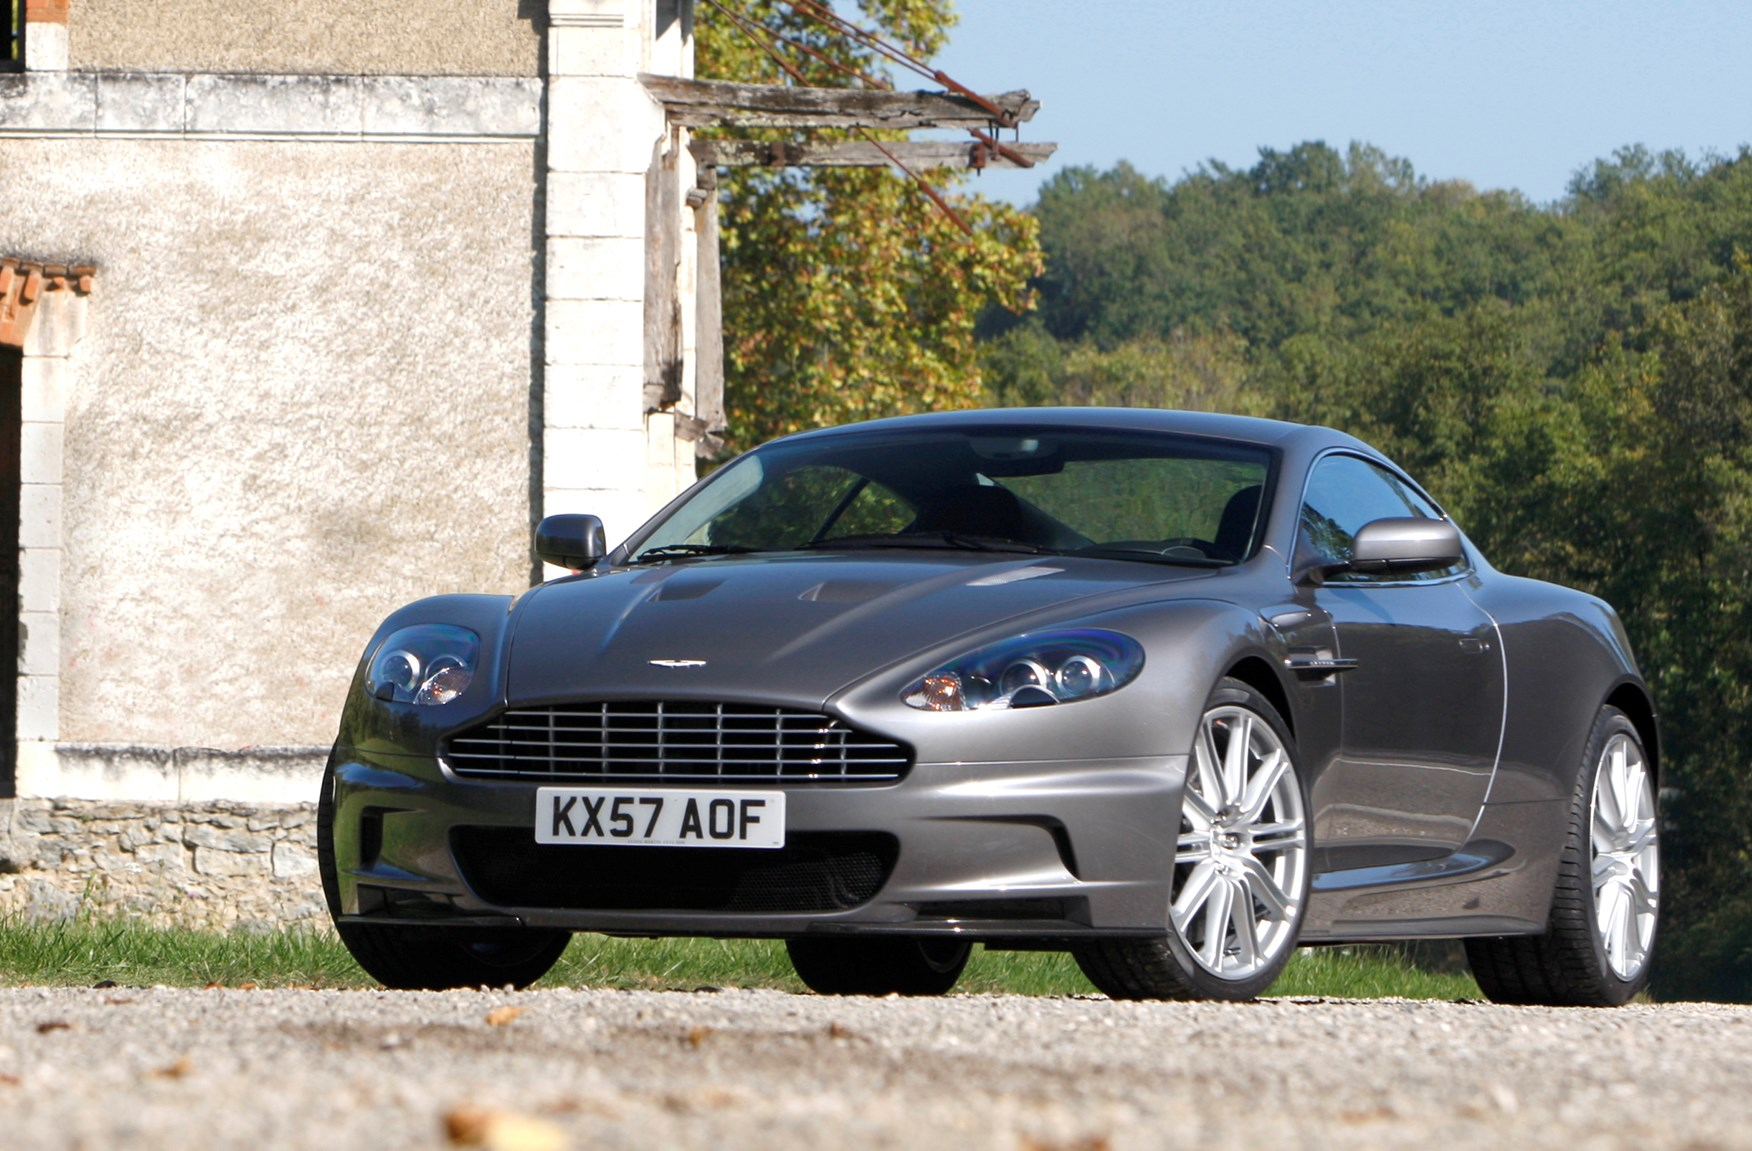 aston martin dbs coupe review 2008 2012 parkers. Black Bedroom Furniture Sets. Home Design Ideas